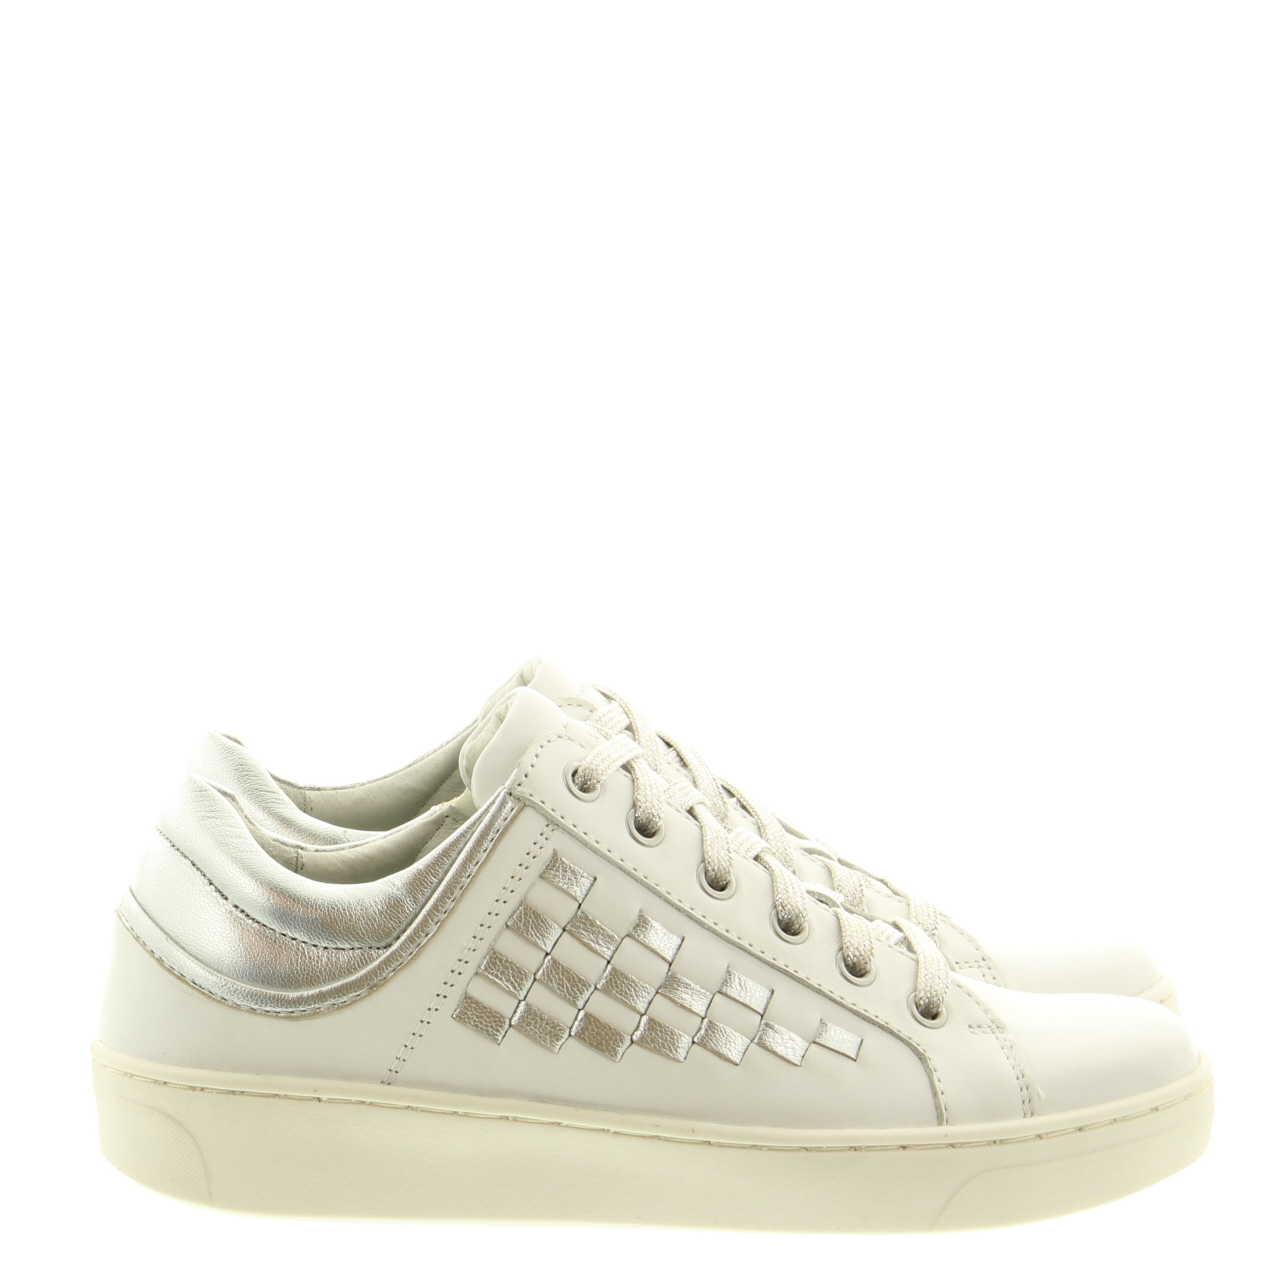 Twins Trackstyle 318151 600 White Silver